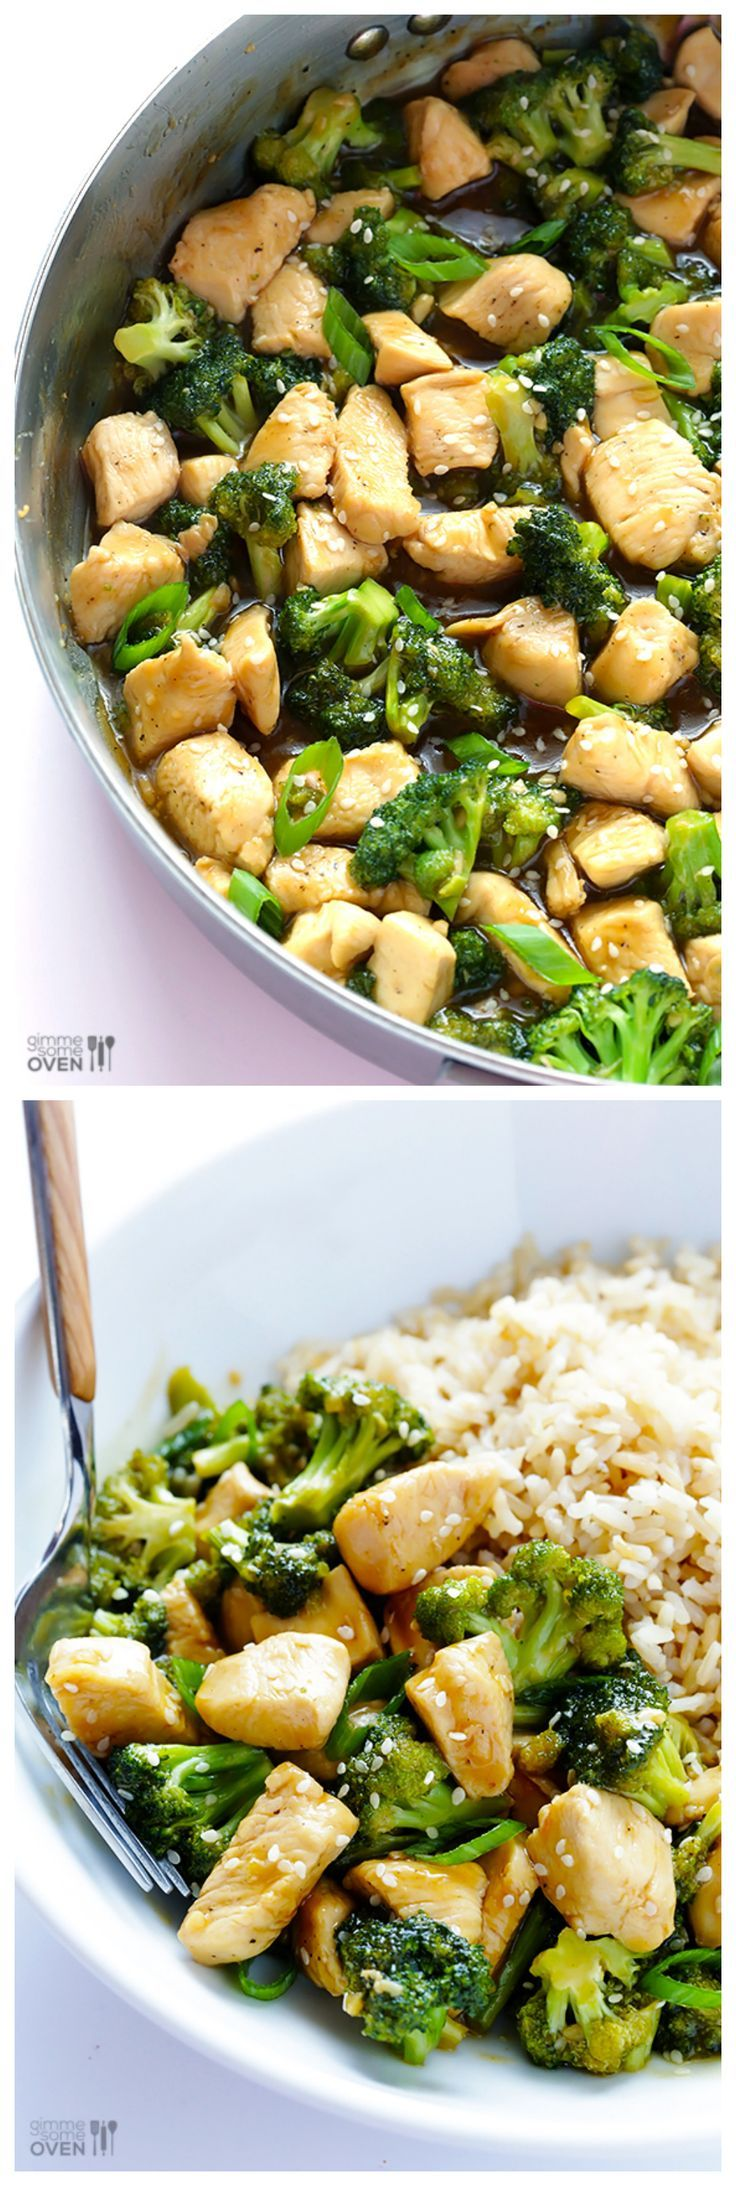 12-Minute Chicken & Broccoli -- so simple to make, and absolutely delicious! | gimmesomeoven.com